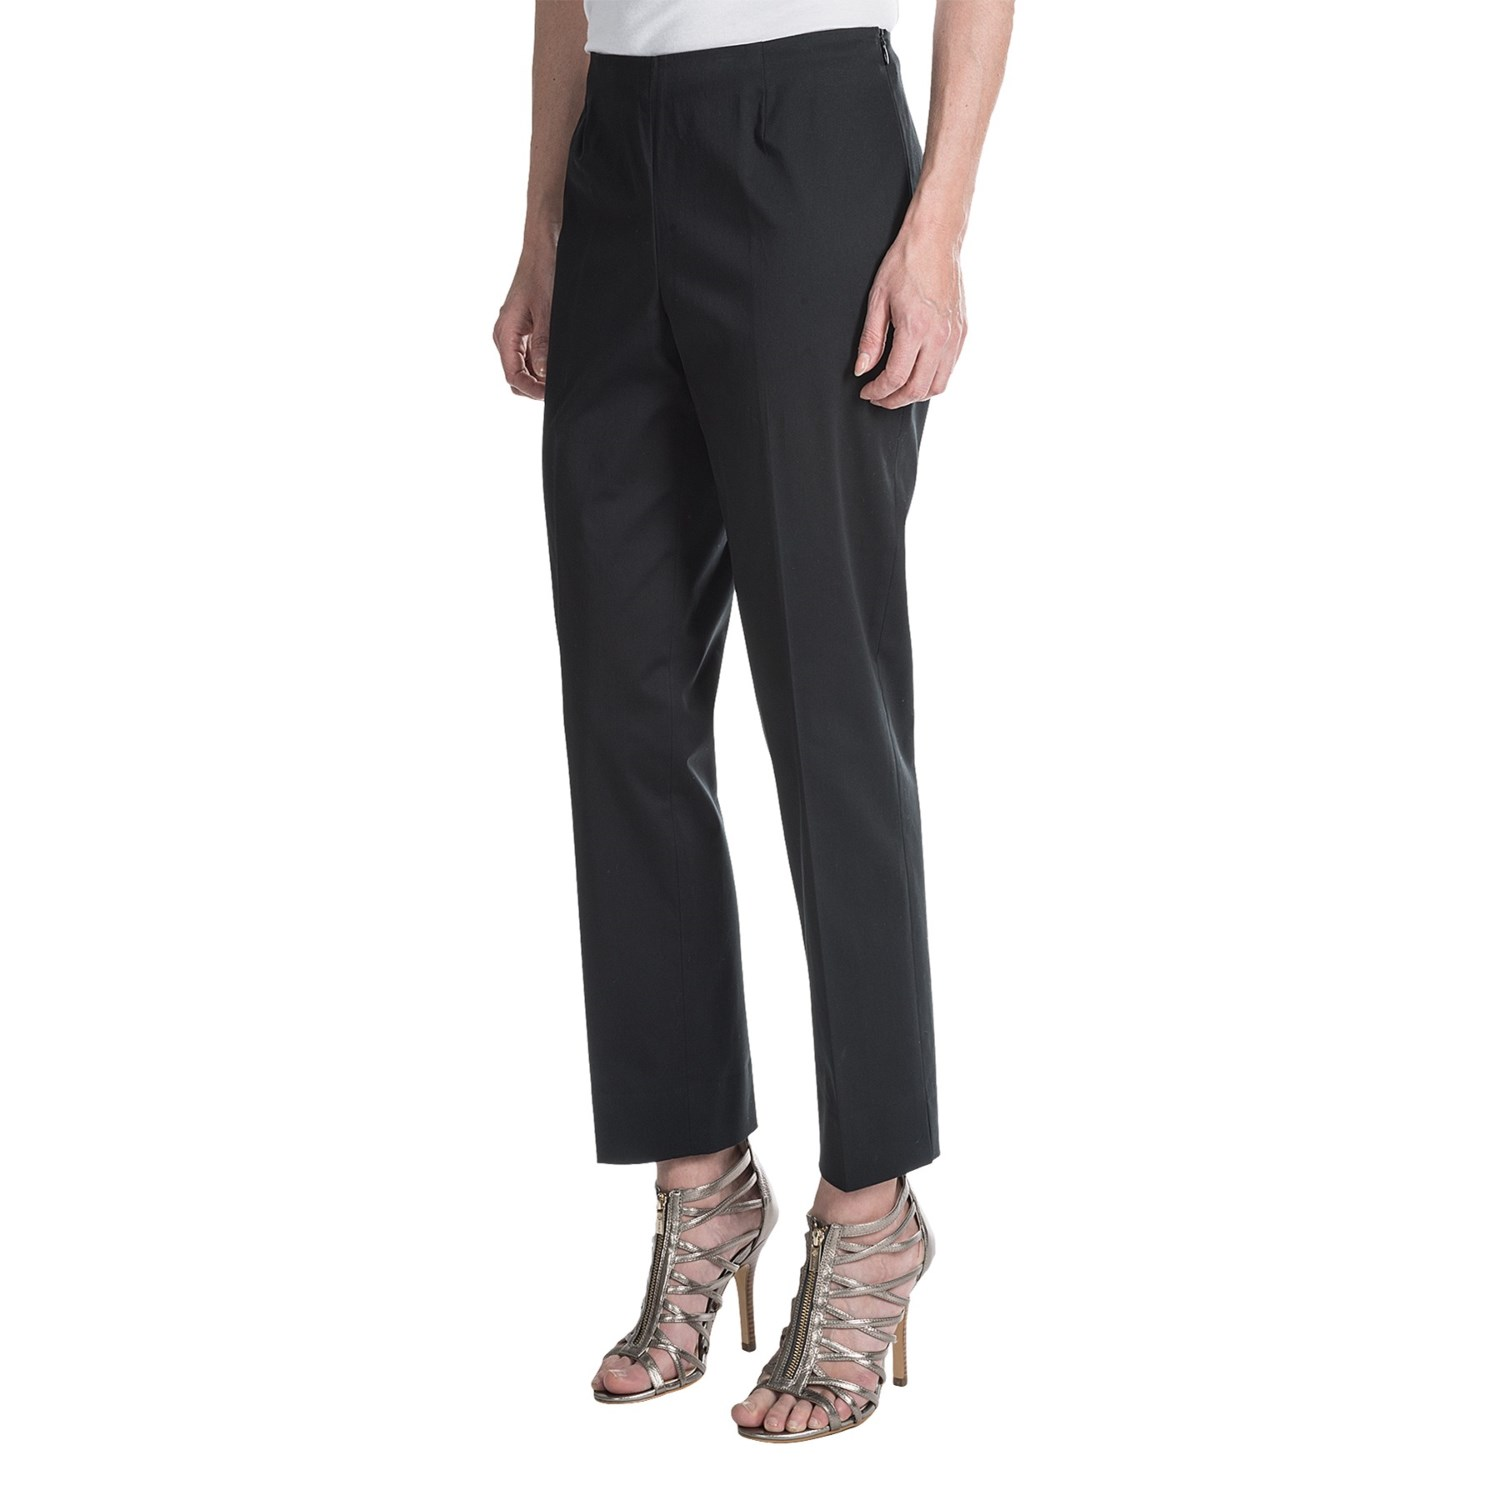 Express White Cotton Sateen Photographer Suit Pant. Womens – Calvin Klein Straight Fit Stretch Cotton Sateen Pants Pants White. Gallery White Skinny Pants MICHAEL Michael Kors Michl Michl Kors Sexy Skinny Cotton Blend Sateen Pants .